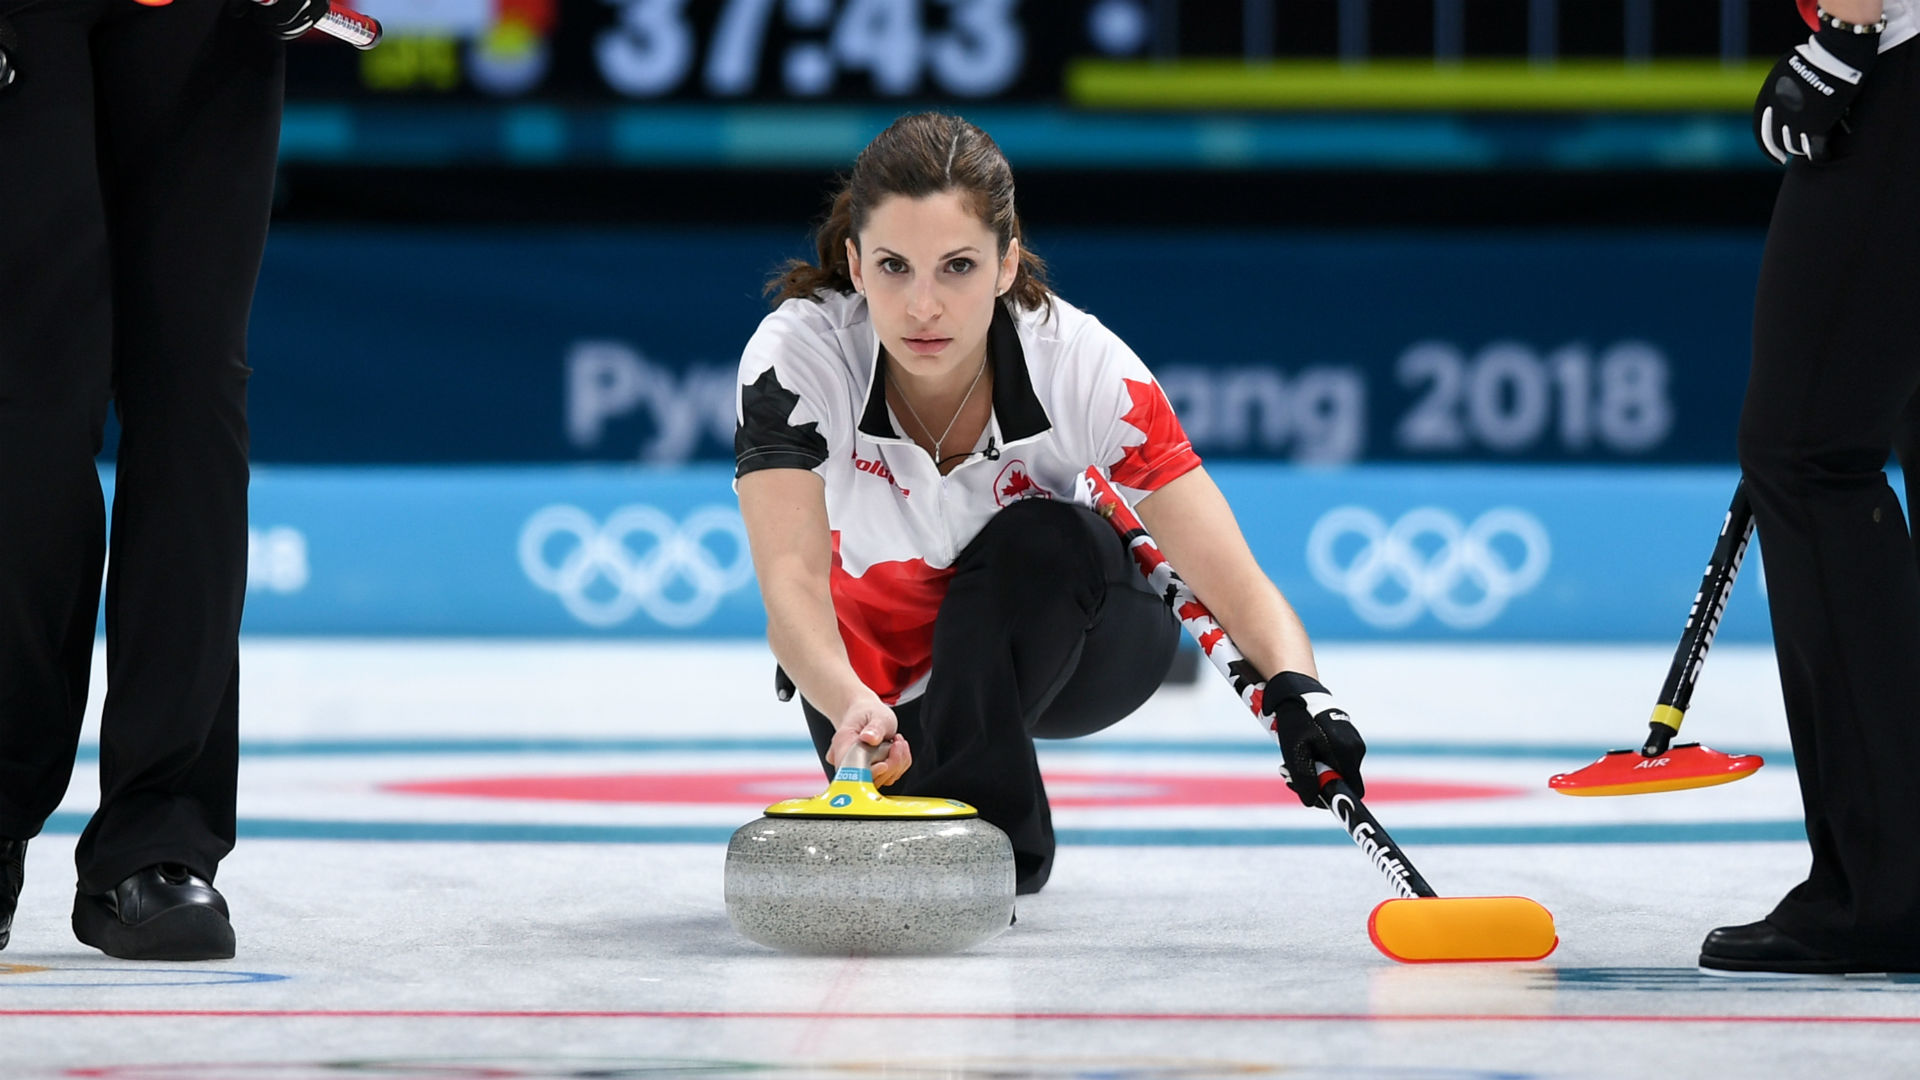 Winter Olympics 2018: Mr T says curling is cool, fool